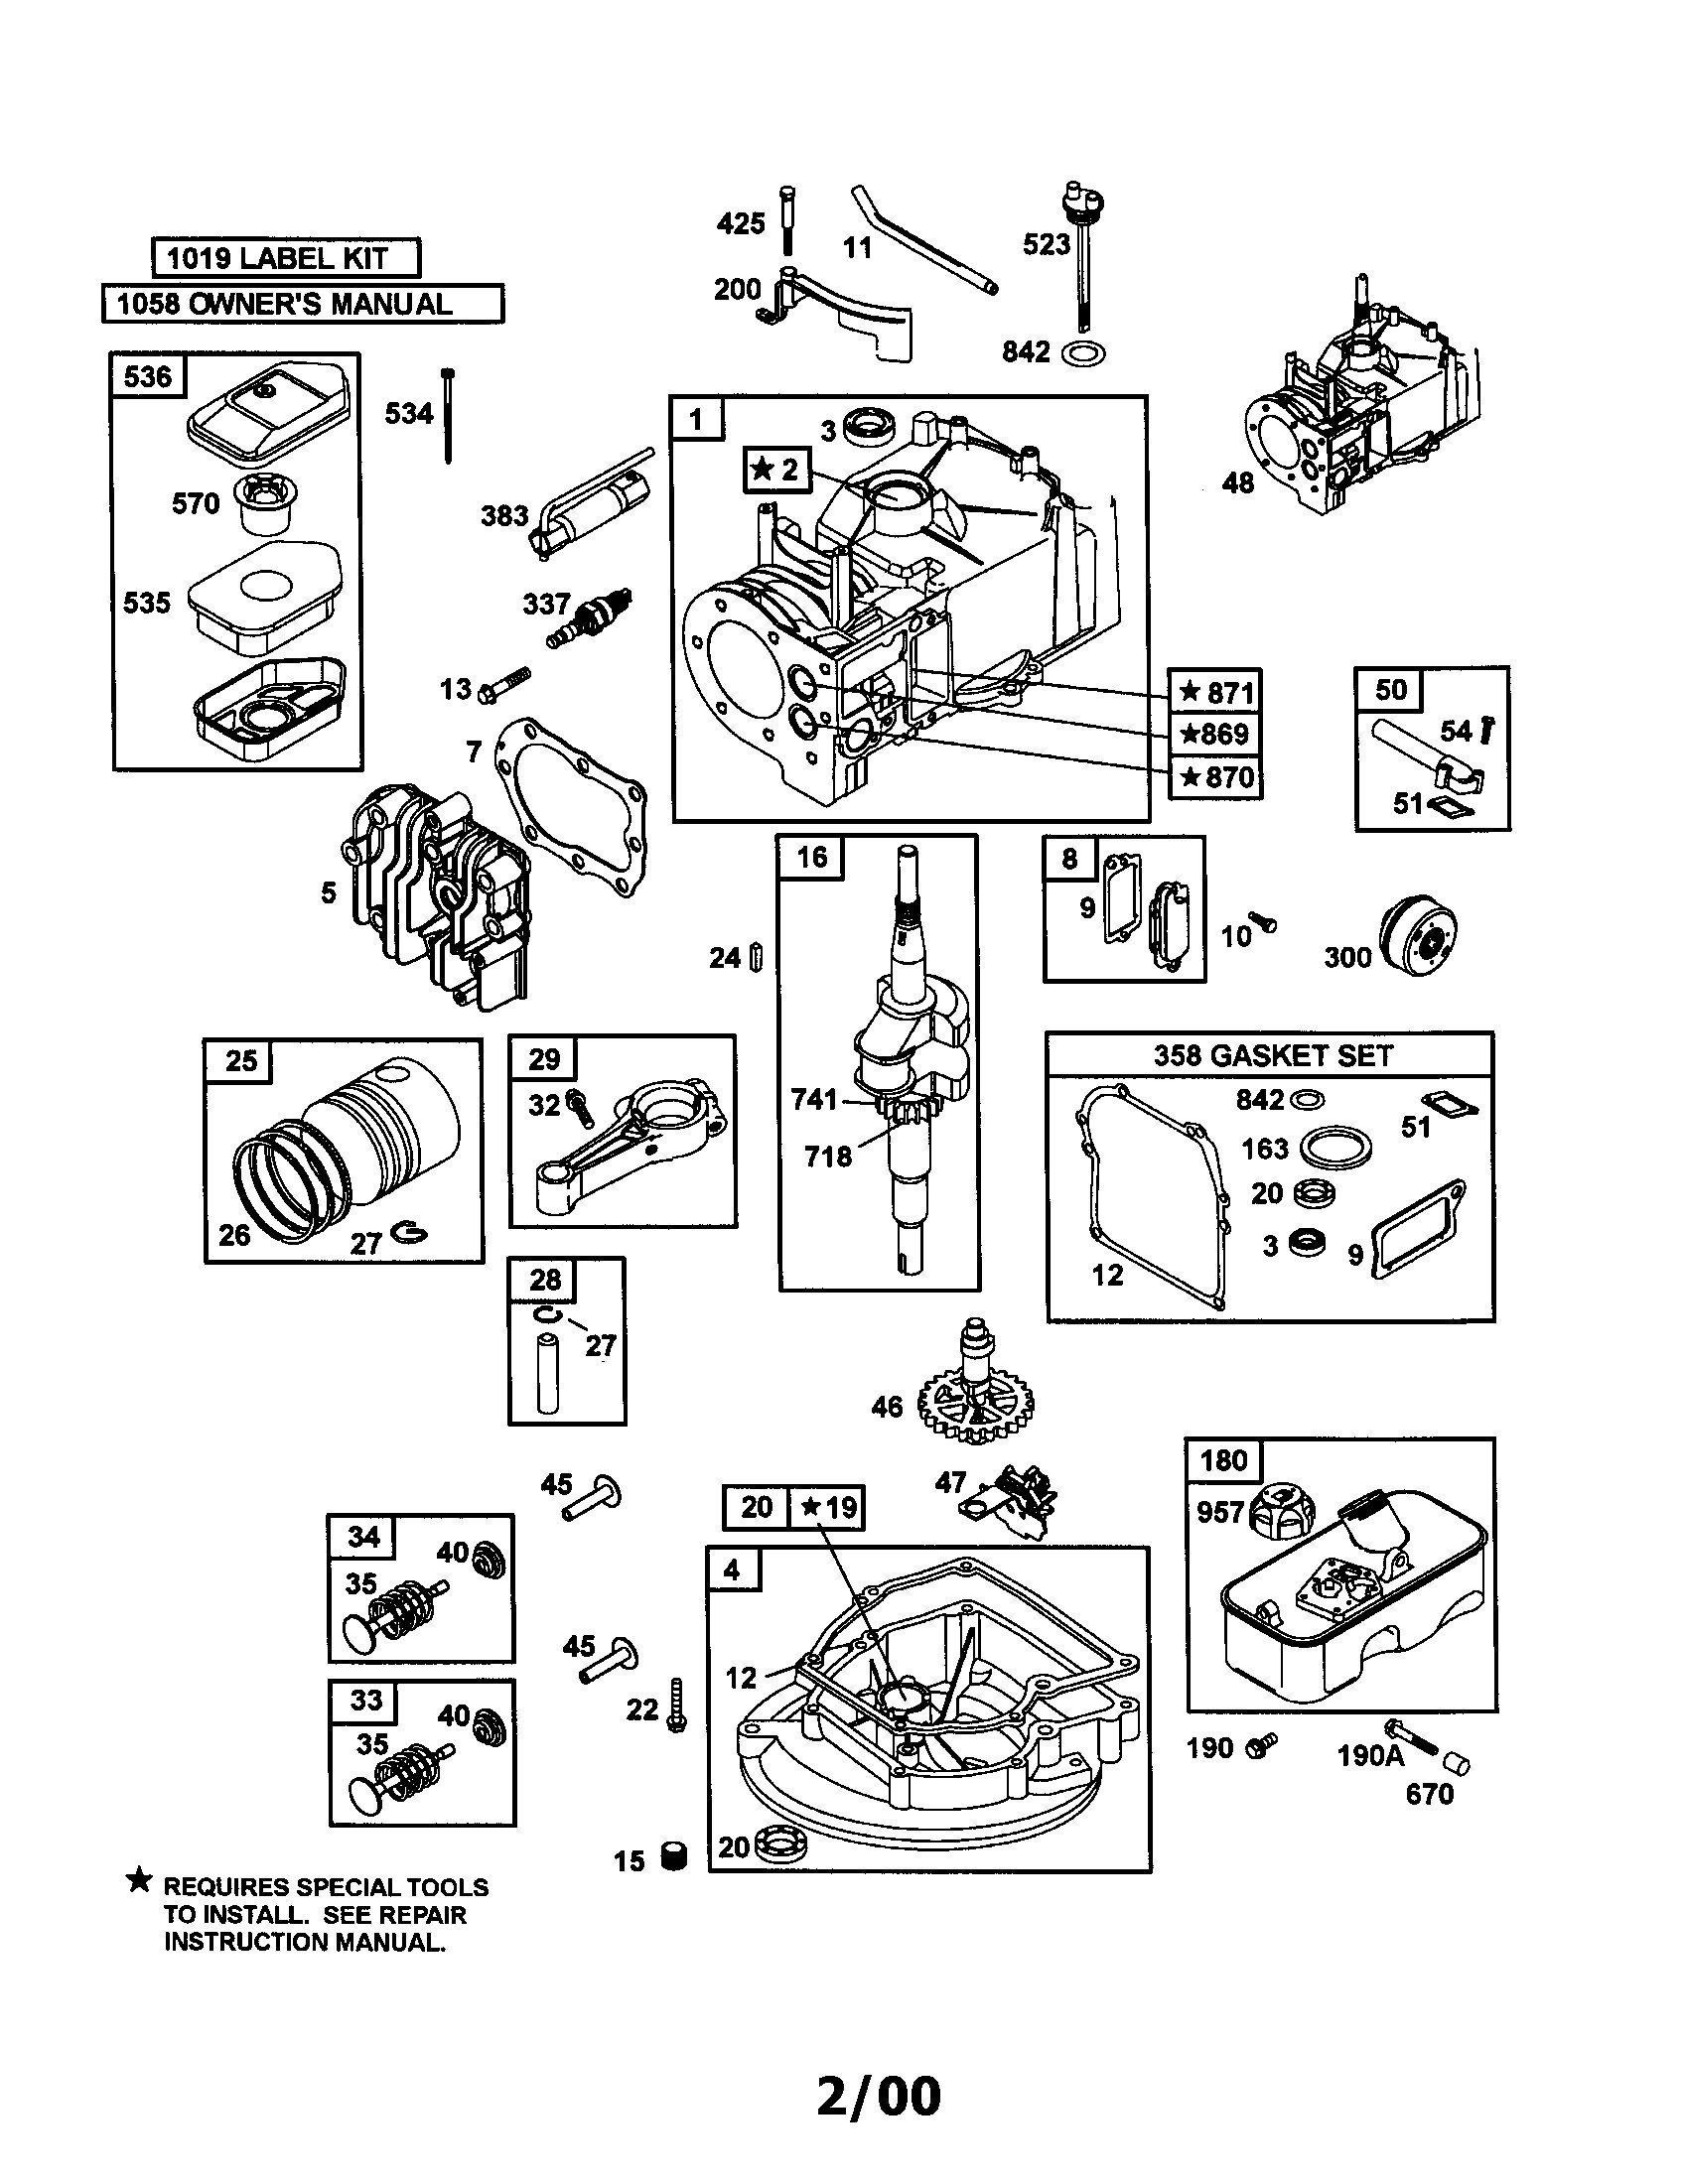 outboard wiring diagrams on 5 hp briggs and stratton engine diagram